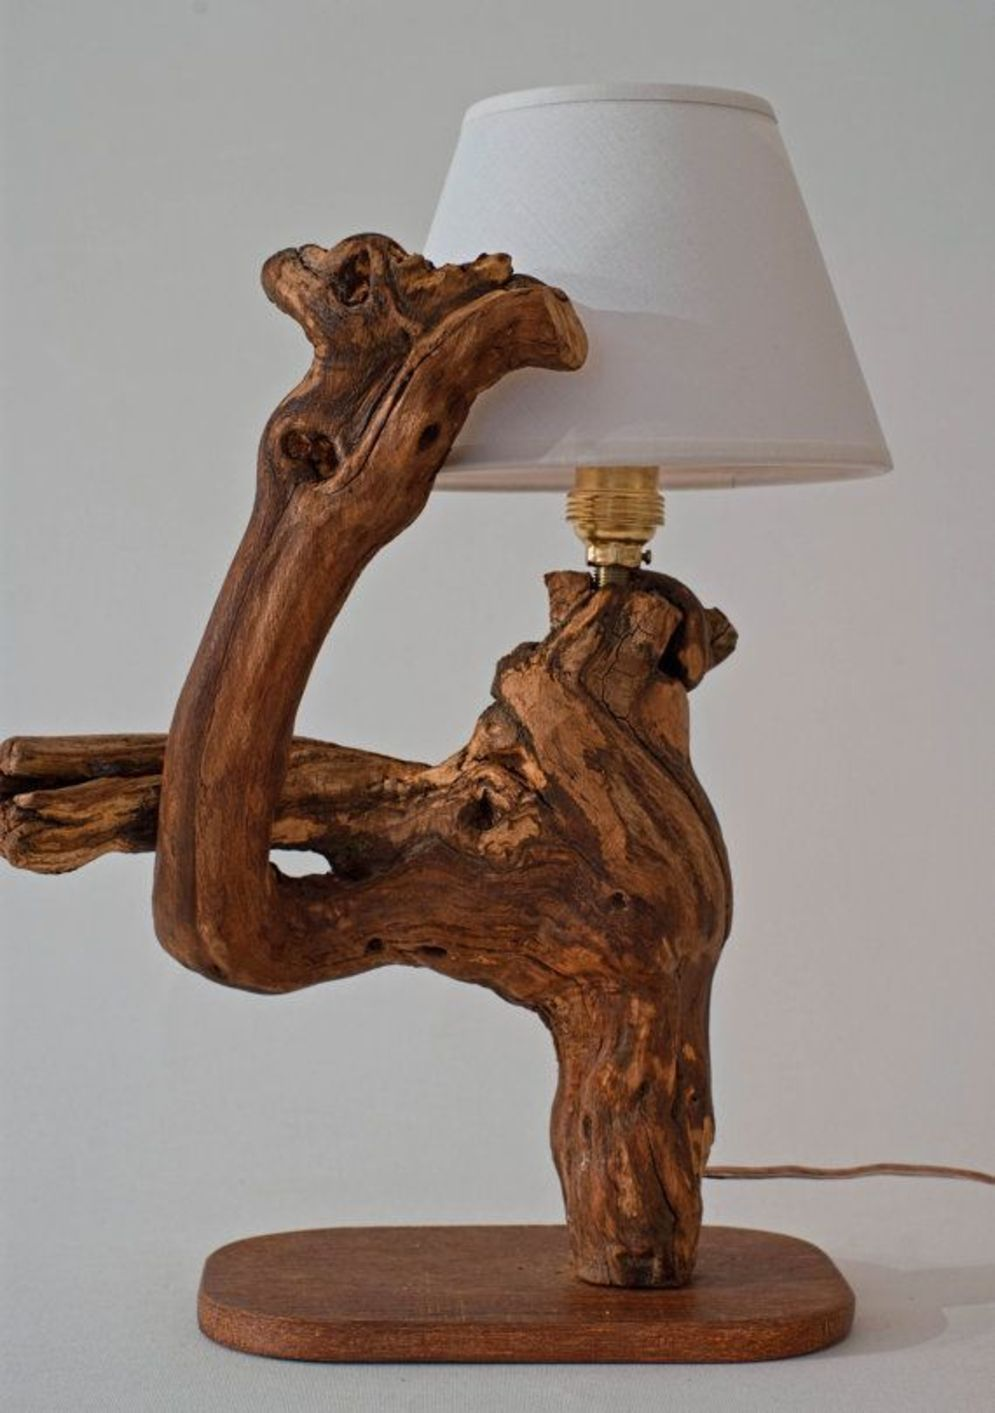 Stunning natural material for Driftwood lamp decoration creating an incredible ambiance Image 17